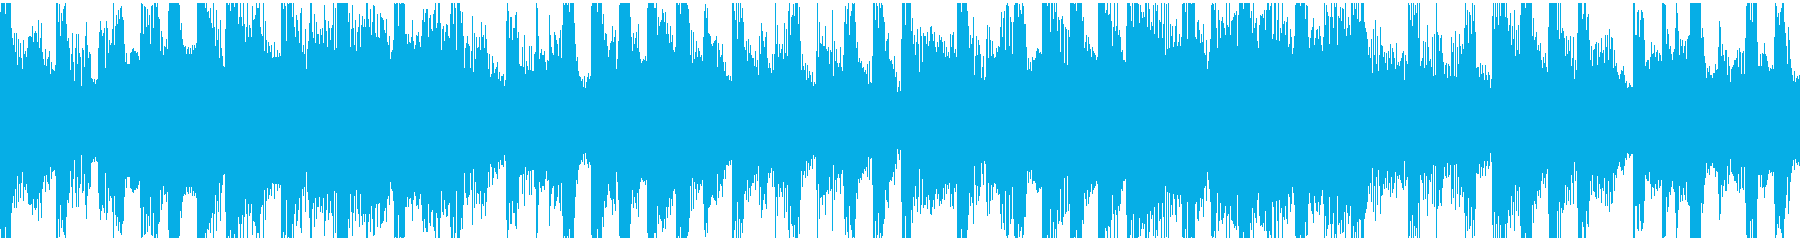 Ambient electroni...'s reproduced waveform